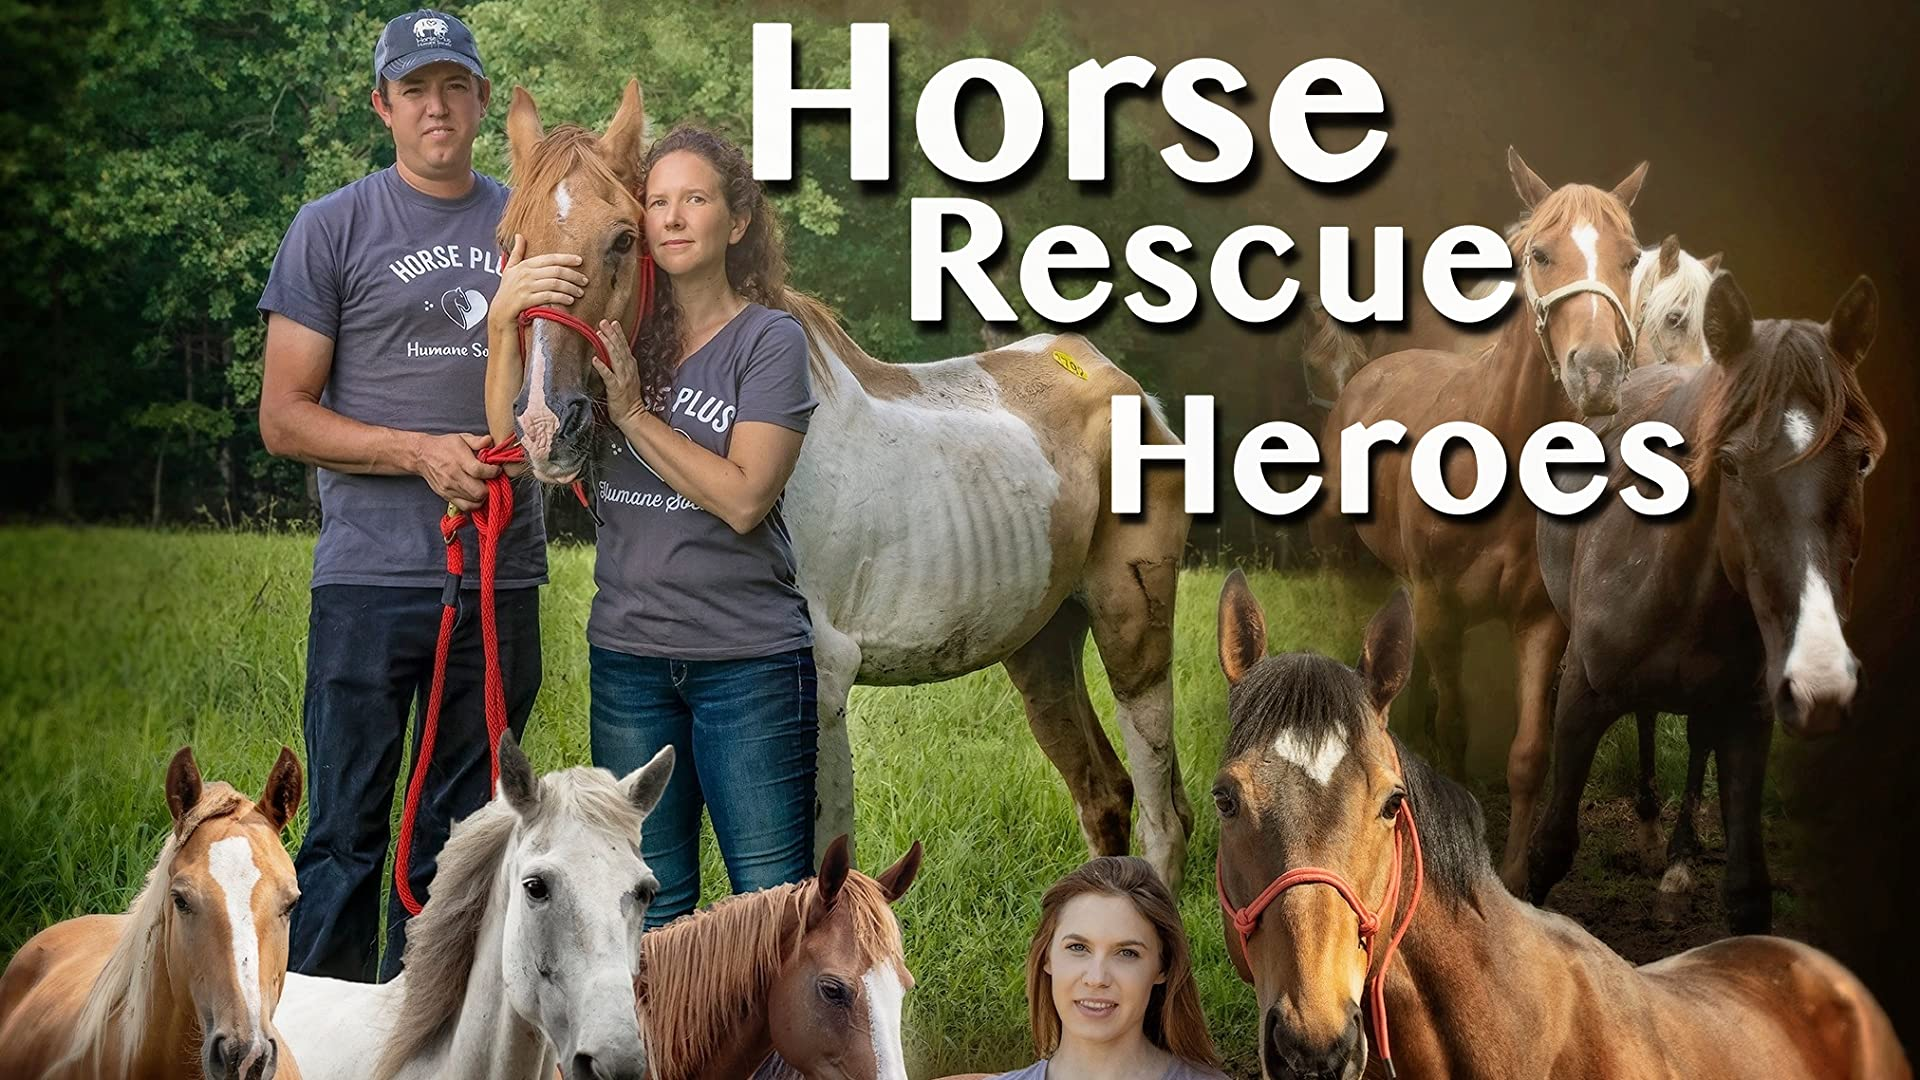 Horse Rescue Heroes